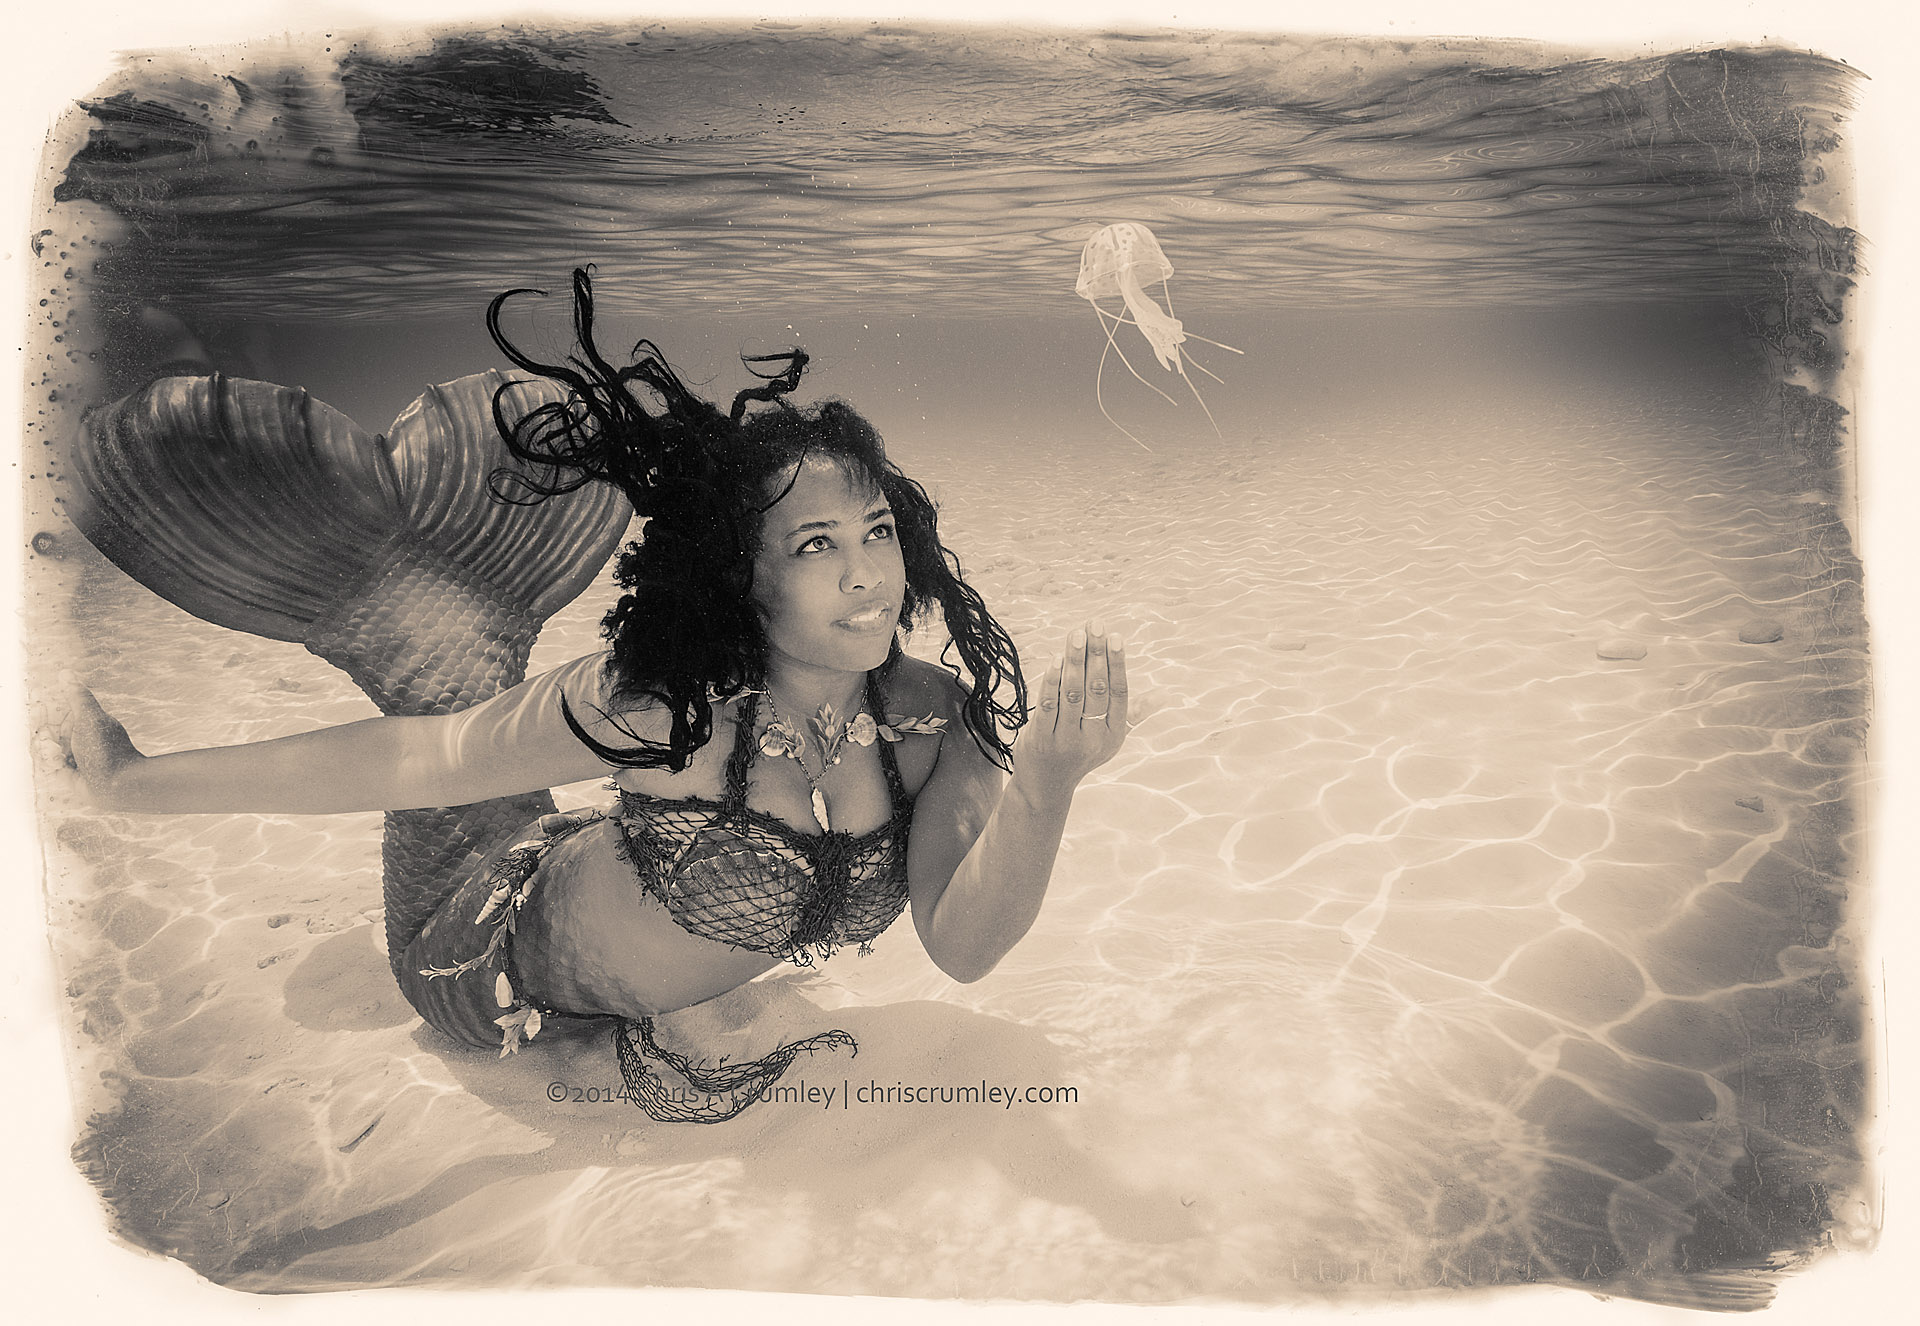 Mermaid with her pet jellyfish Kevin; MPW Exuma Cays, Bahamas Islands